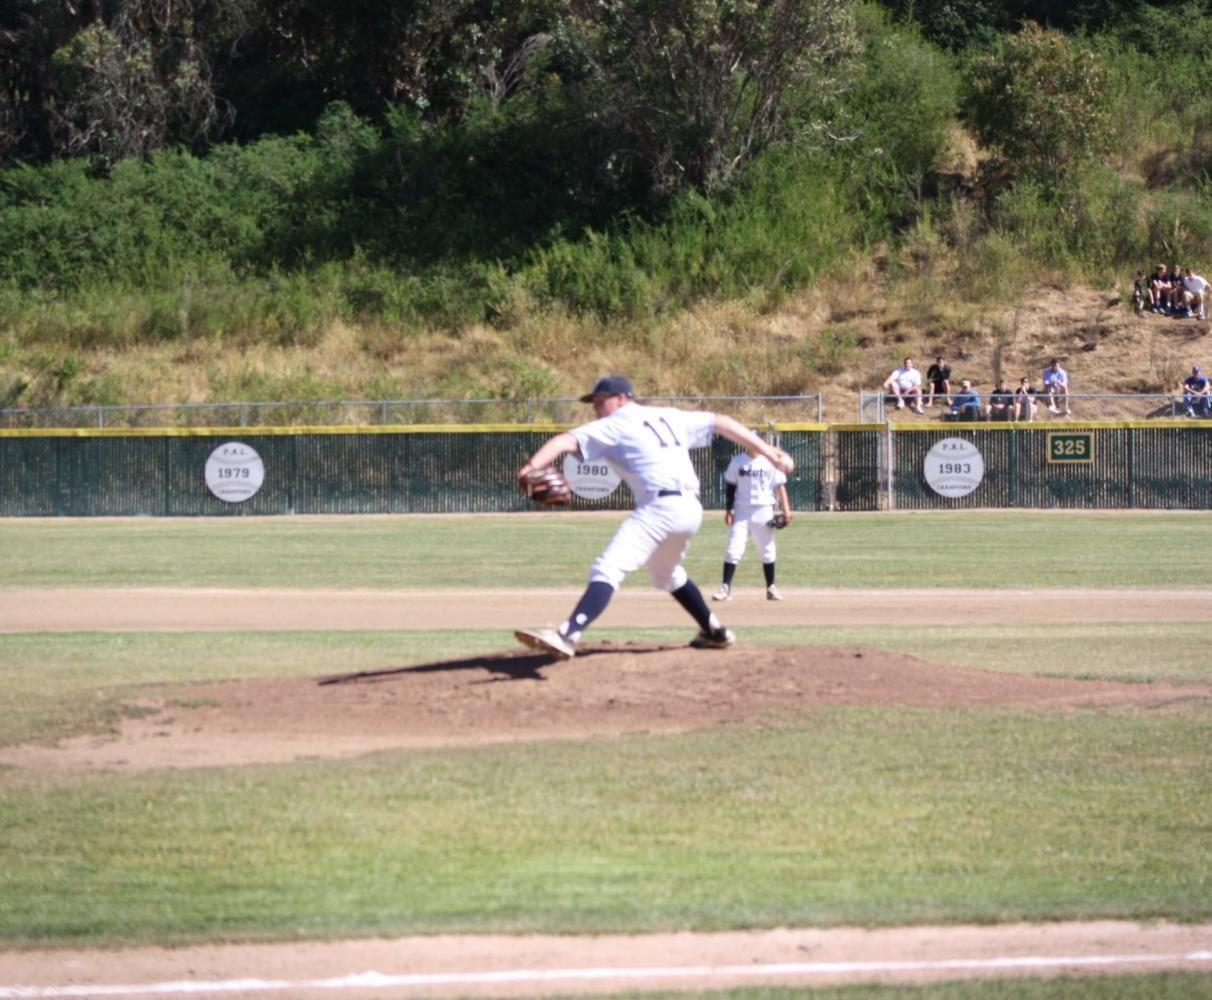 Sean+Propel+pitches+the+ball+against+the+Serra+Padres.+